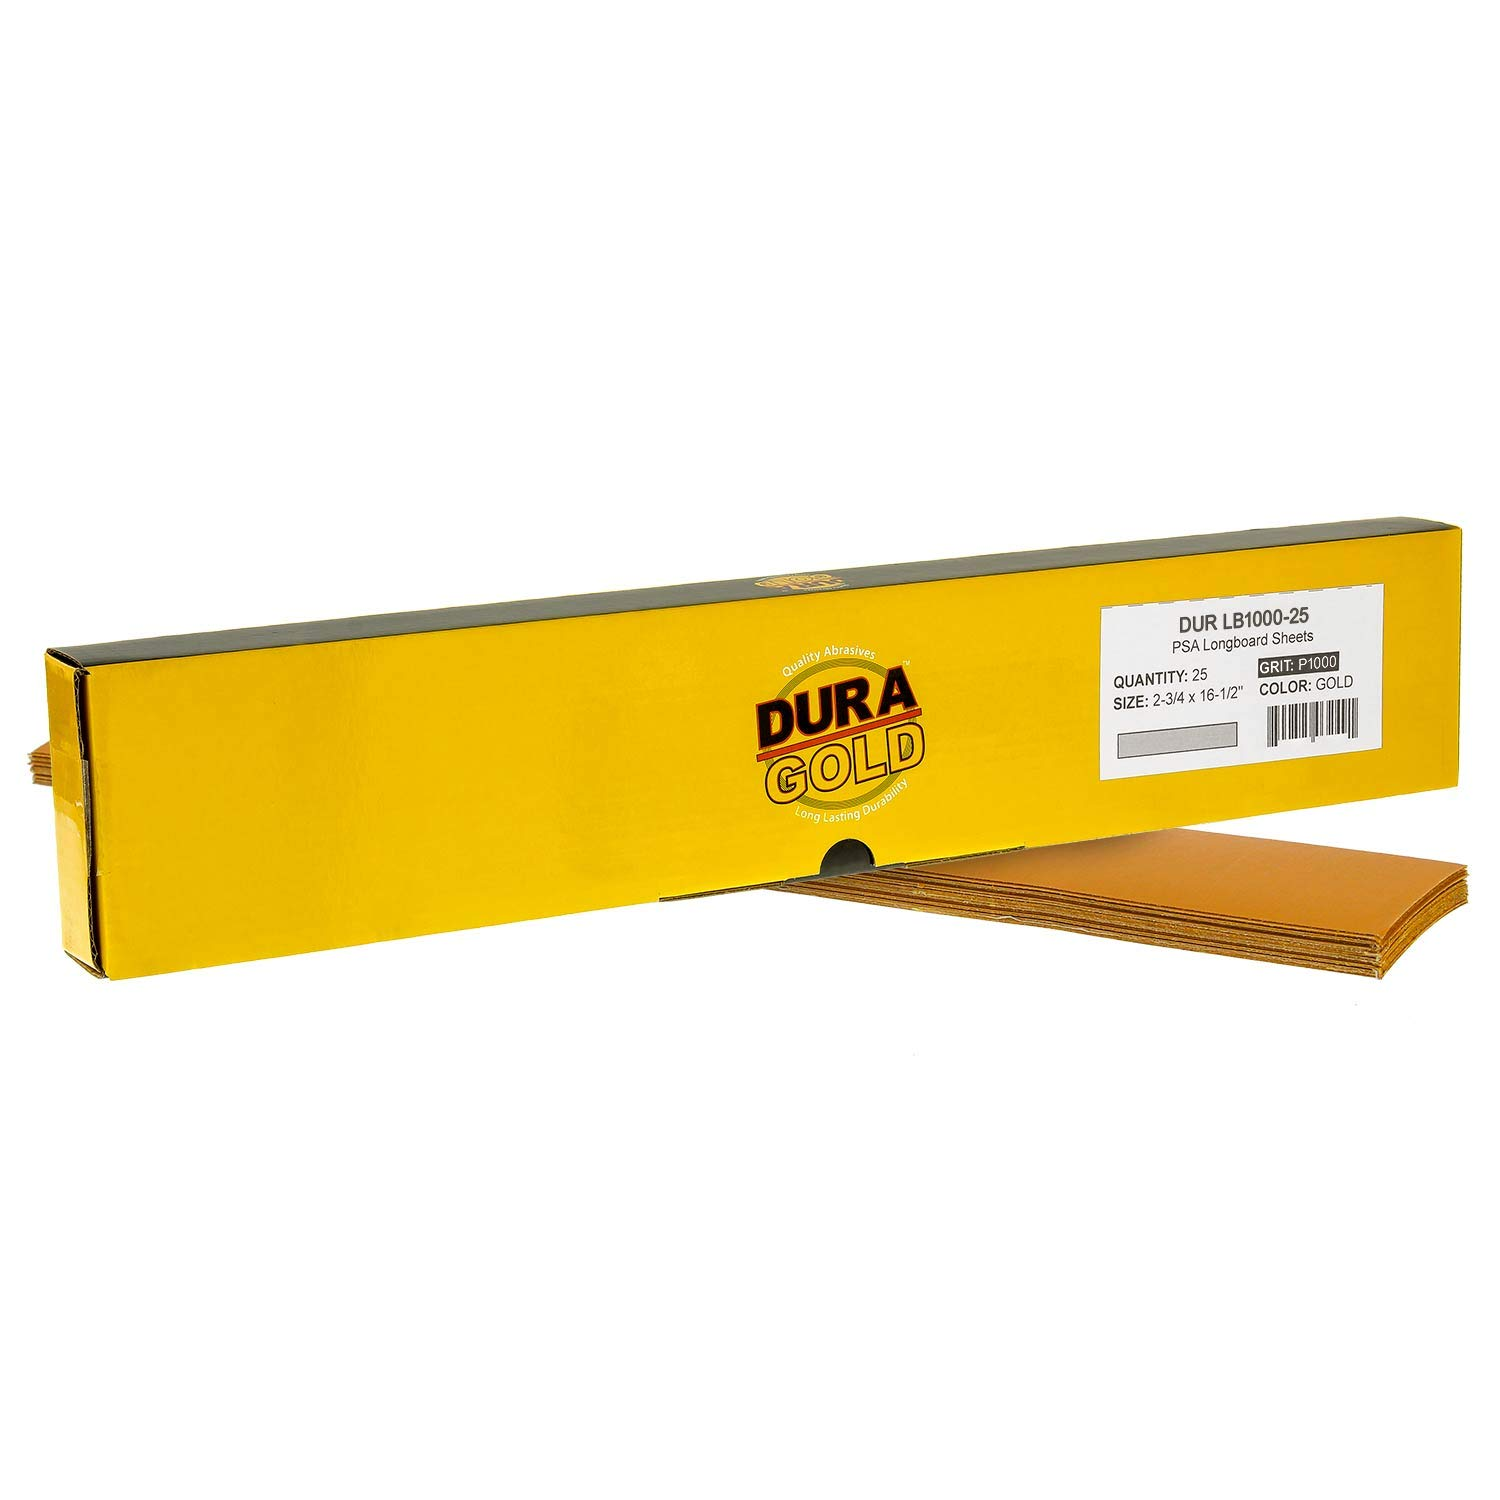 Pre-Cut Longboard Sheets 2-3//4 wide by 16-1//2 long 80 Grit Gold PSA Self Adhesive Stickyback Longboard Sandpaper Dura-Gold Premium Box of 25 Sandpaper Finishing Sheets